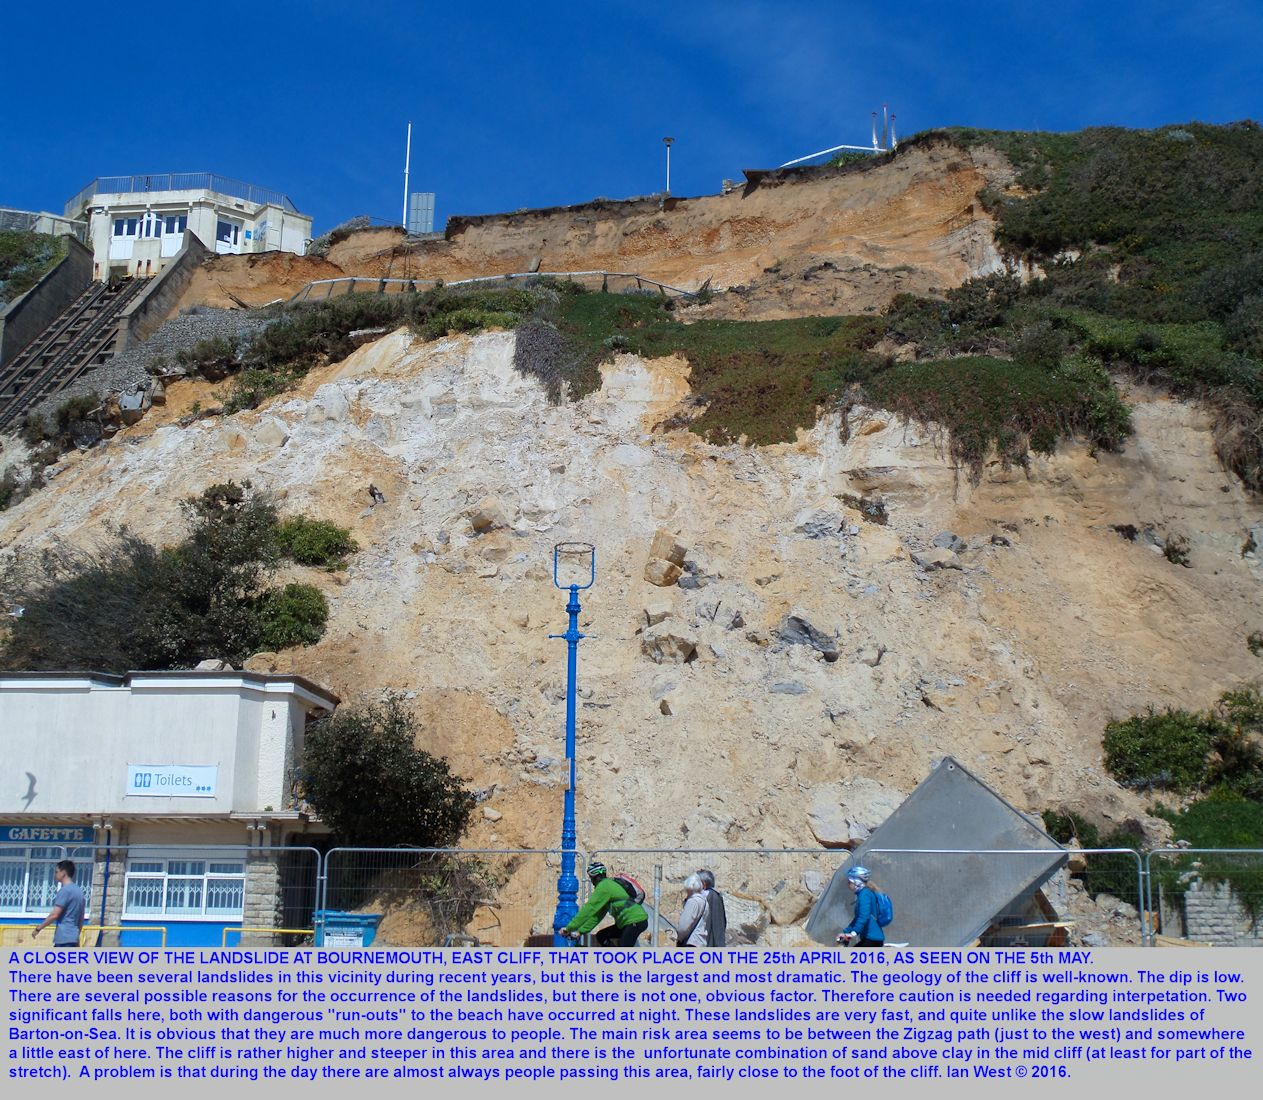 A closer view of the landslide adjacent to the East Cliff Cliff Lift, Bournemouth, Dorset, as seen on the 5th May 2016